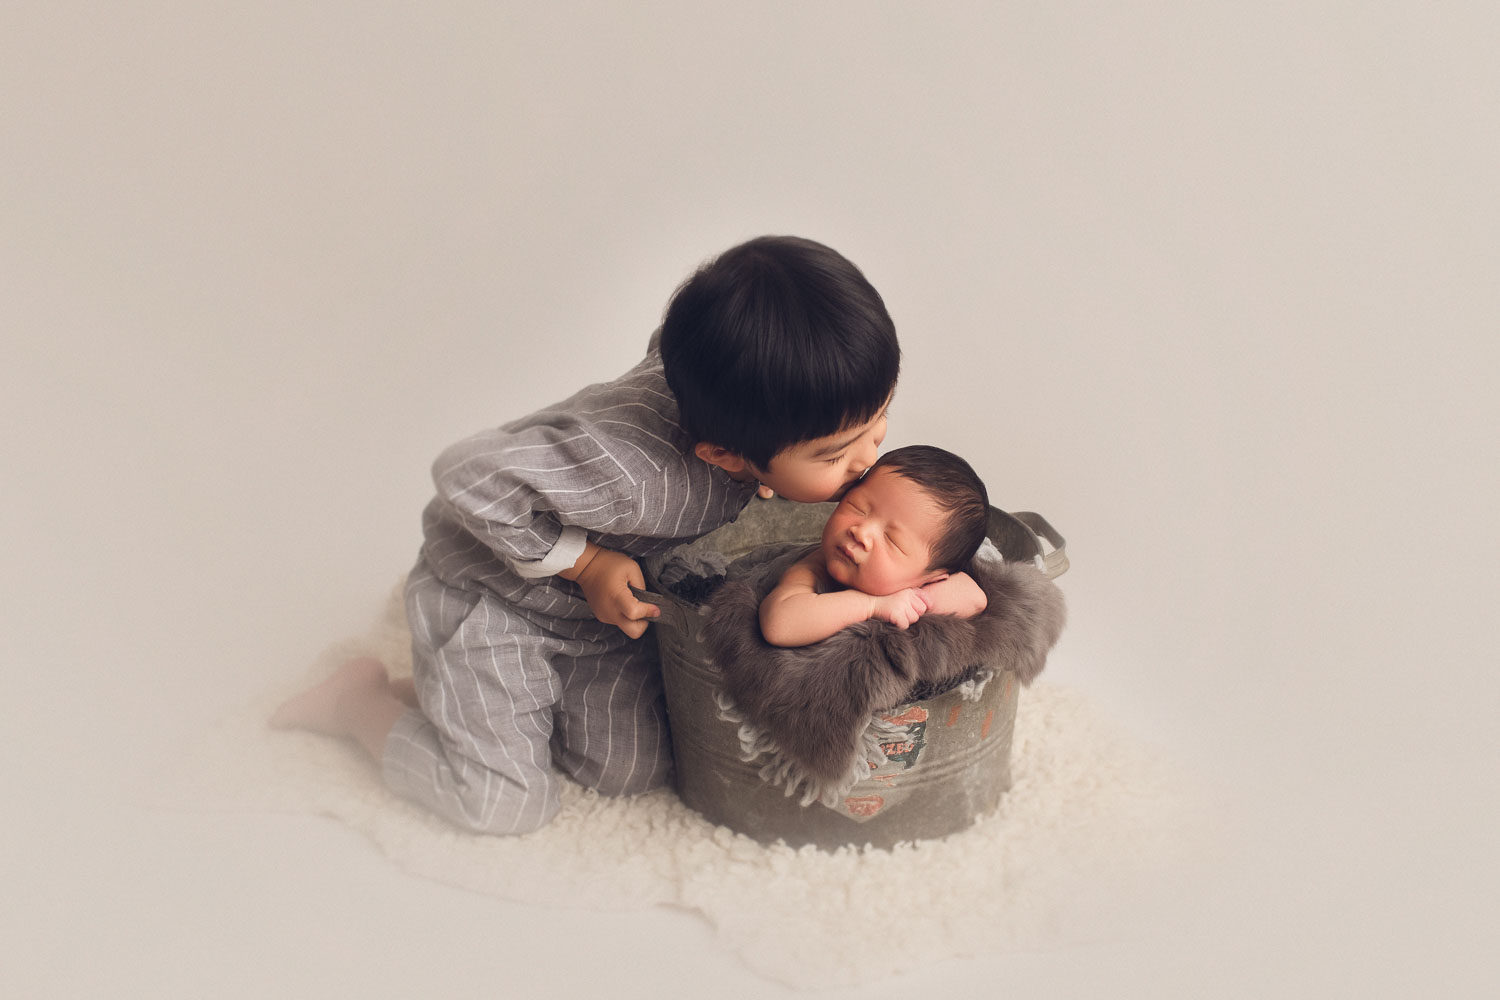 newborn photography vancouver - sibling kissing